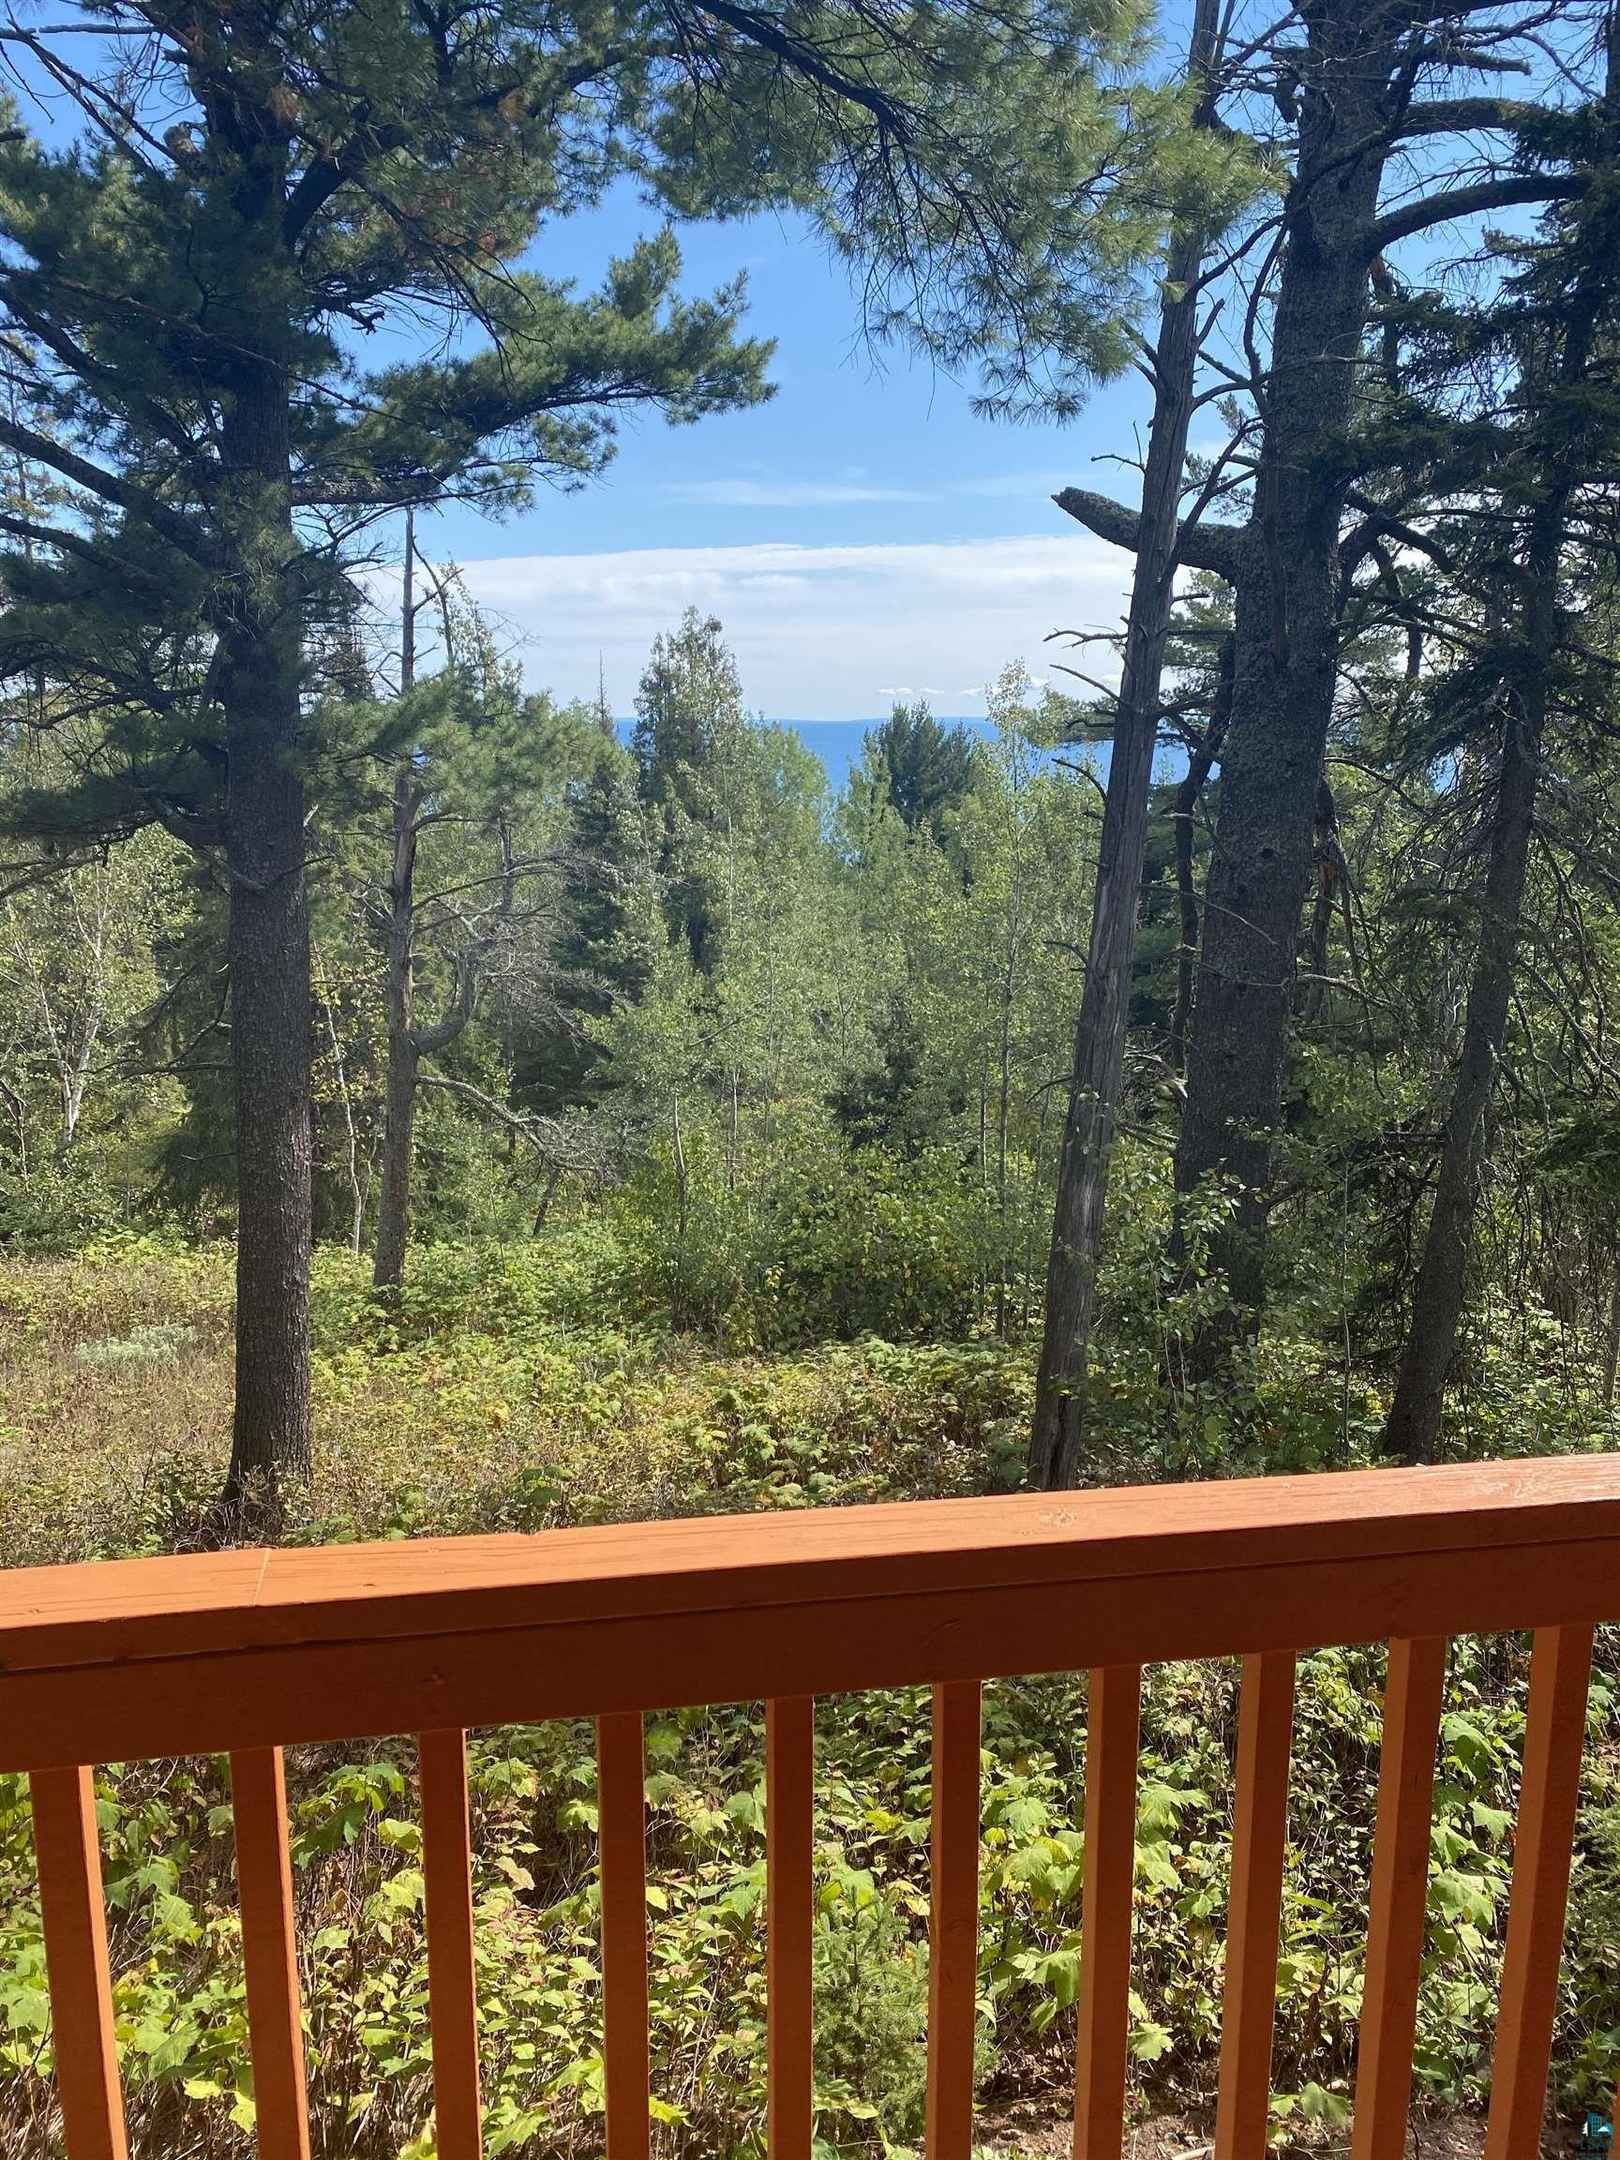 View 21 photos of this 1 bed, 1 bath, and 720 sqft. single_family home located at 4366 Wood Ridge Dr, Beaver Bay, Minnesota 55601 is PENDING for $315,500.